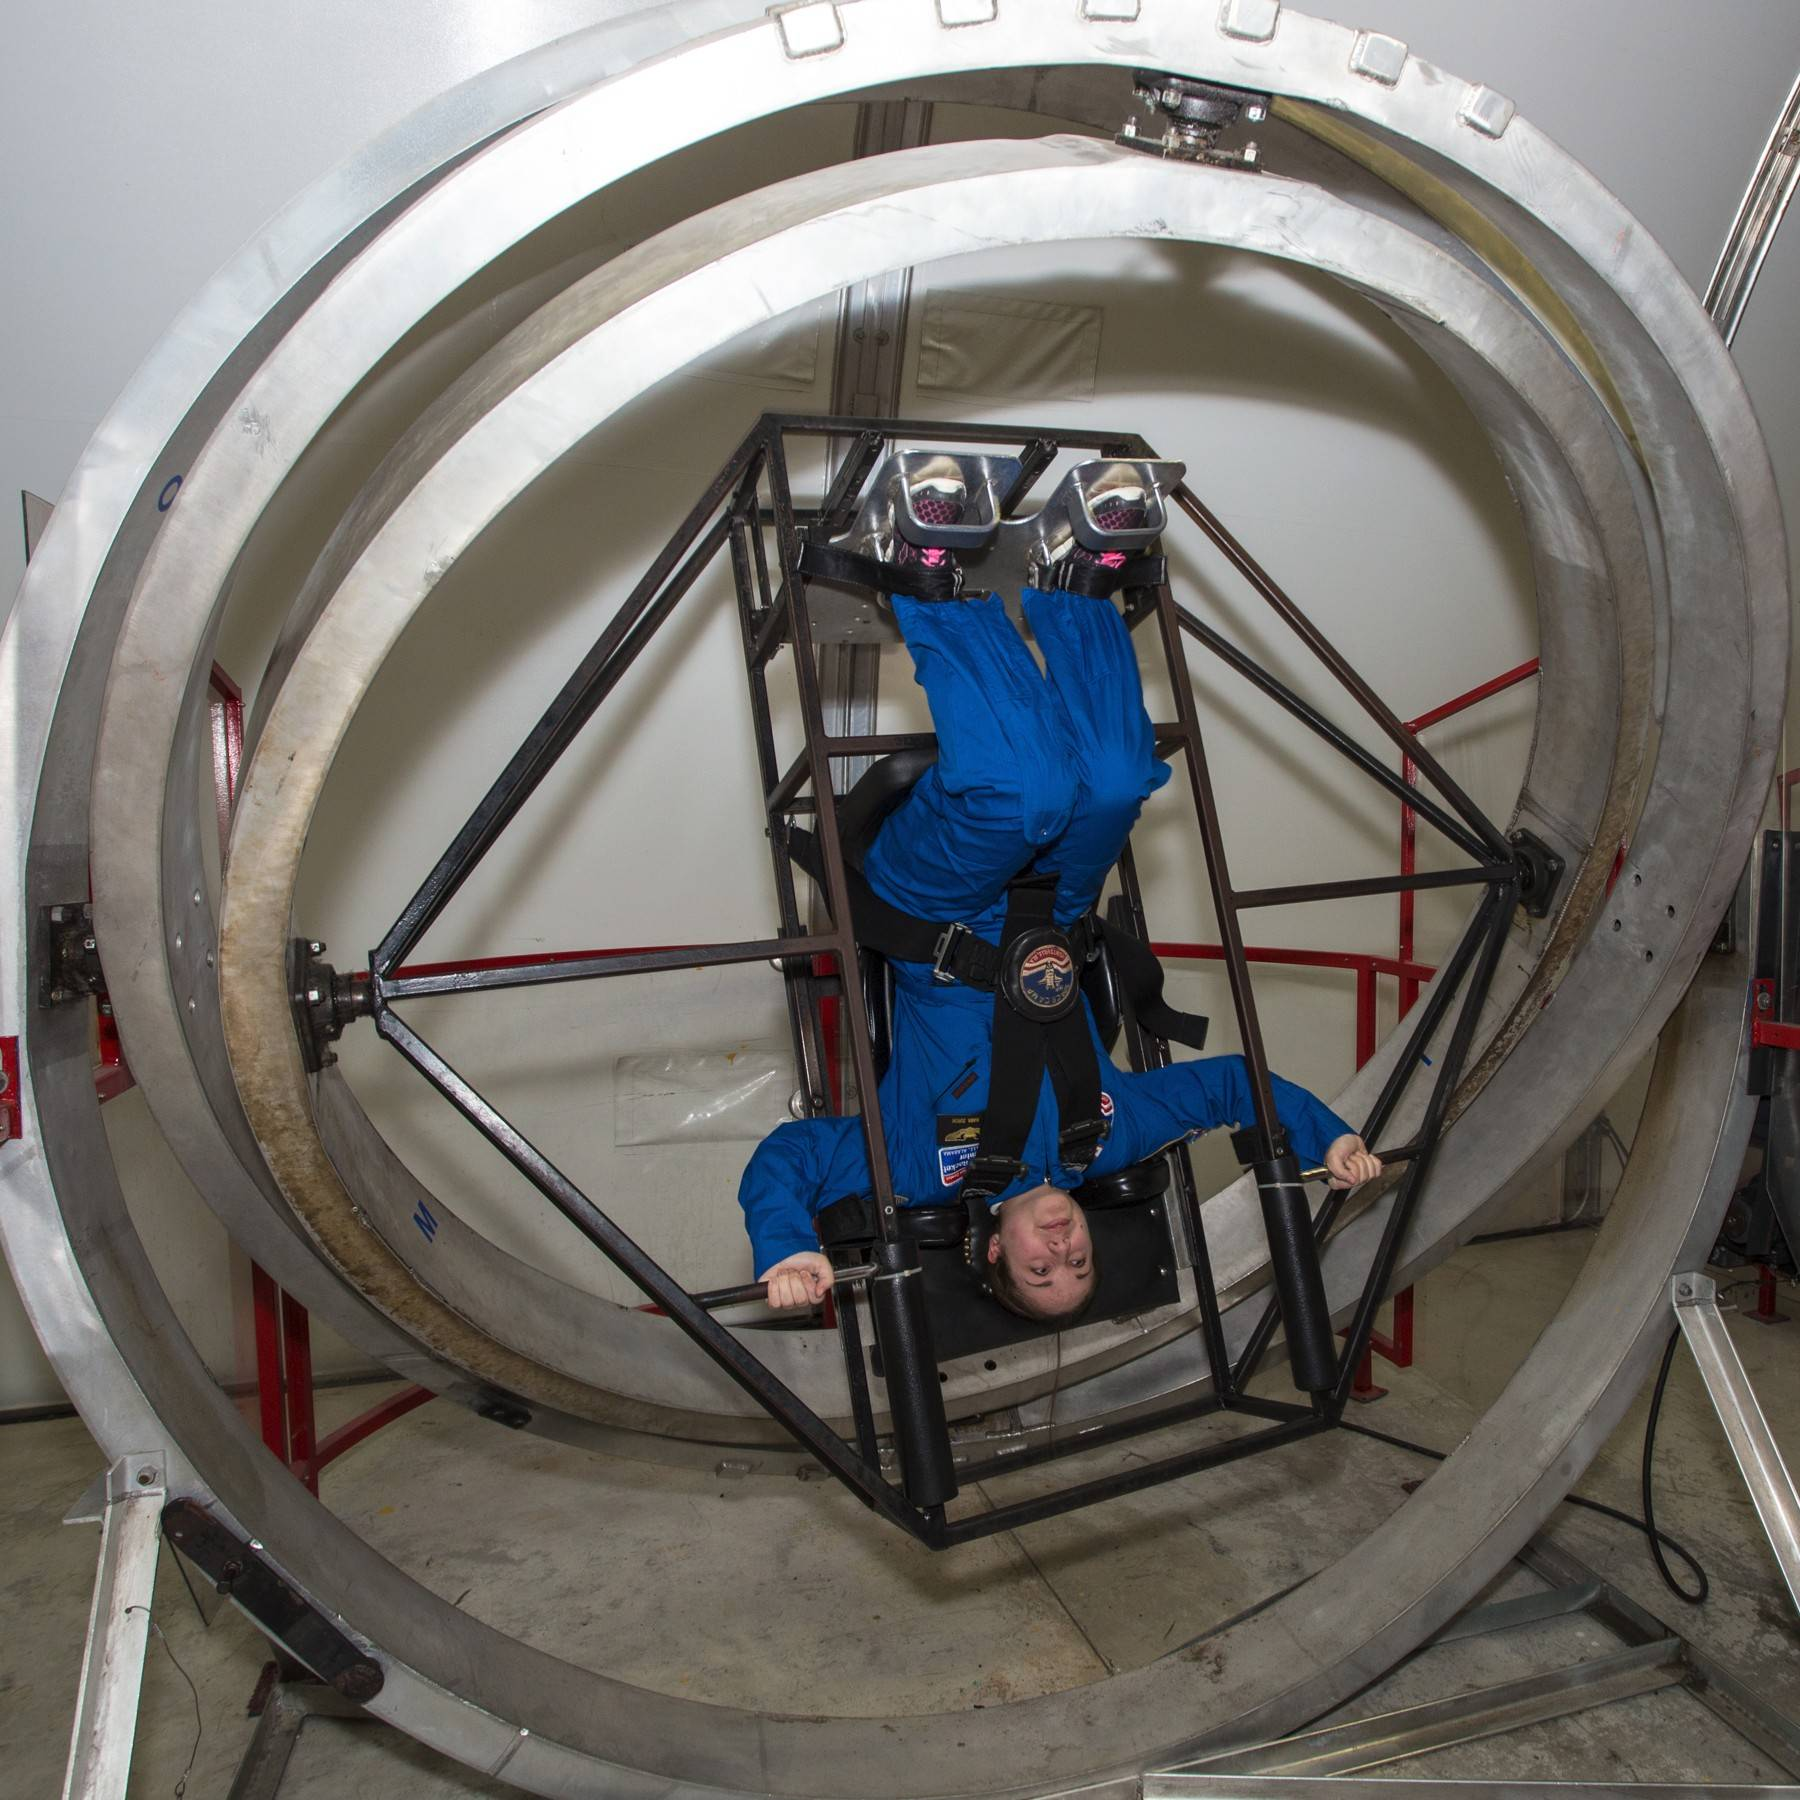 Kiara Zurow of Geneva is in a Multi-Axis Trainer that simulates the disorientation someone would feel in a tumble spin during re-entry into the Earth's atmosphere.